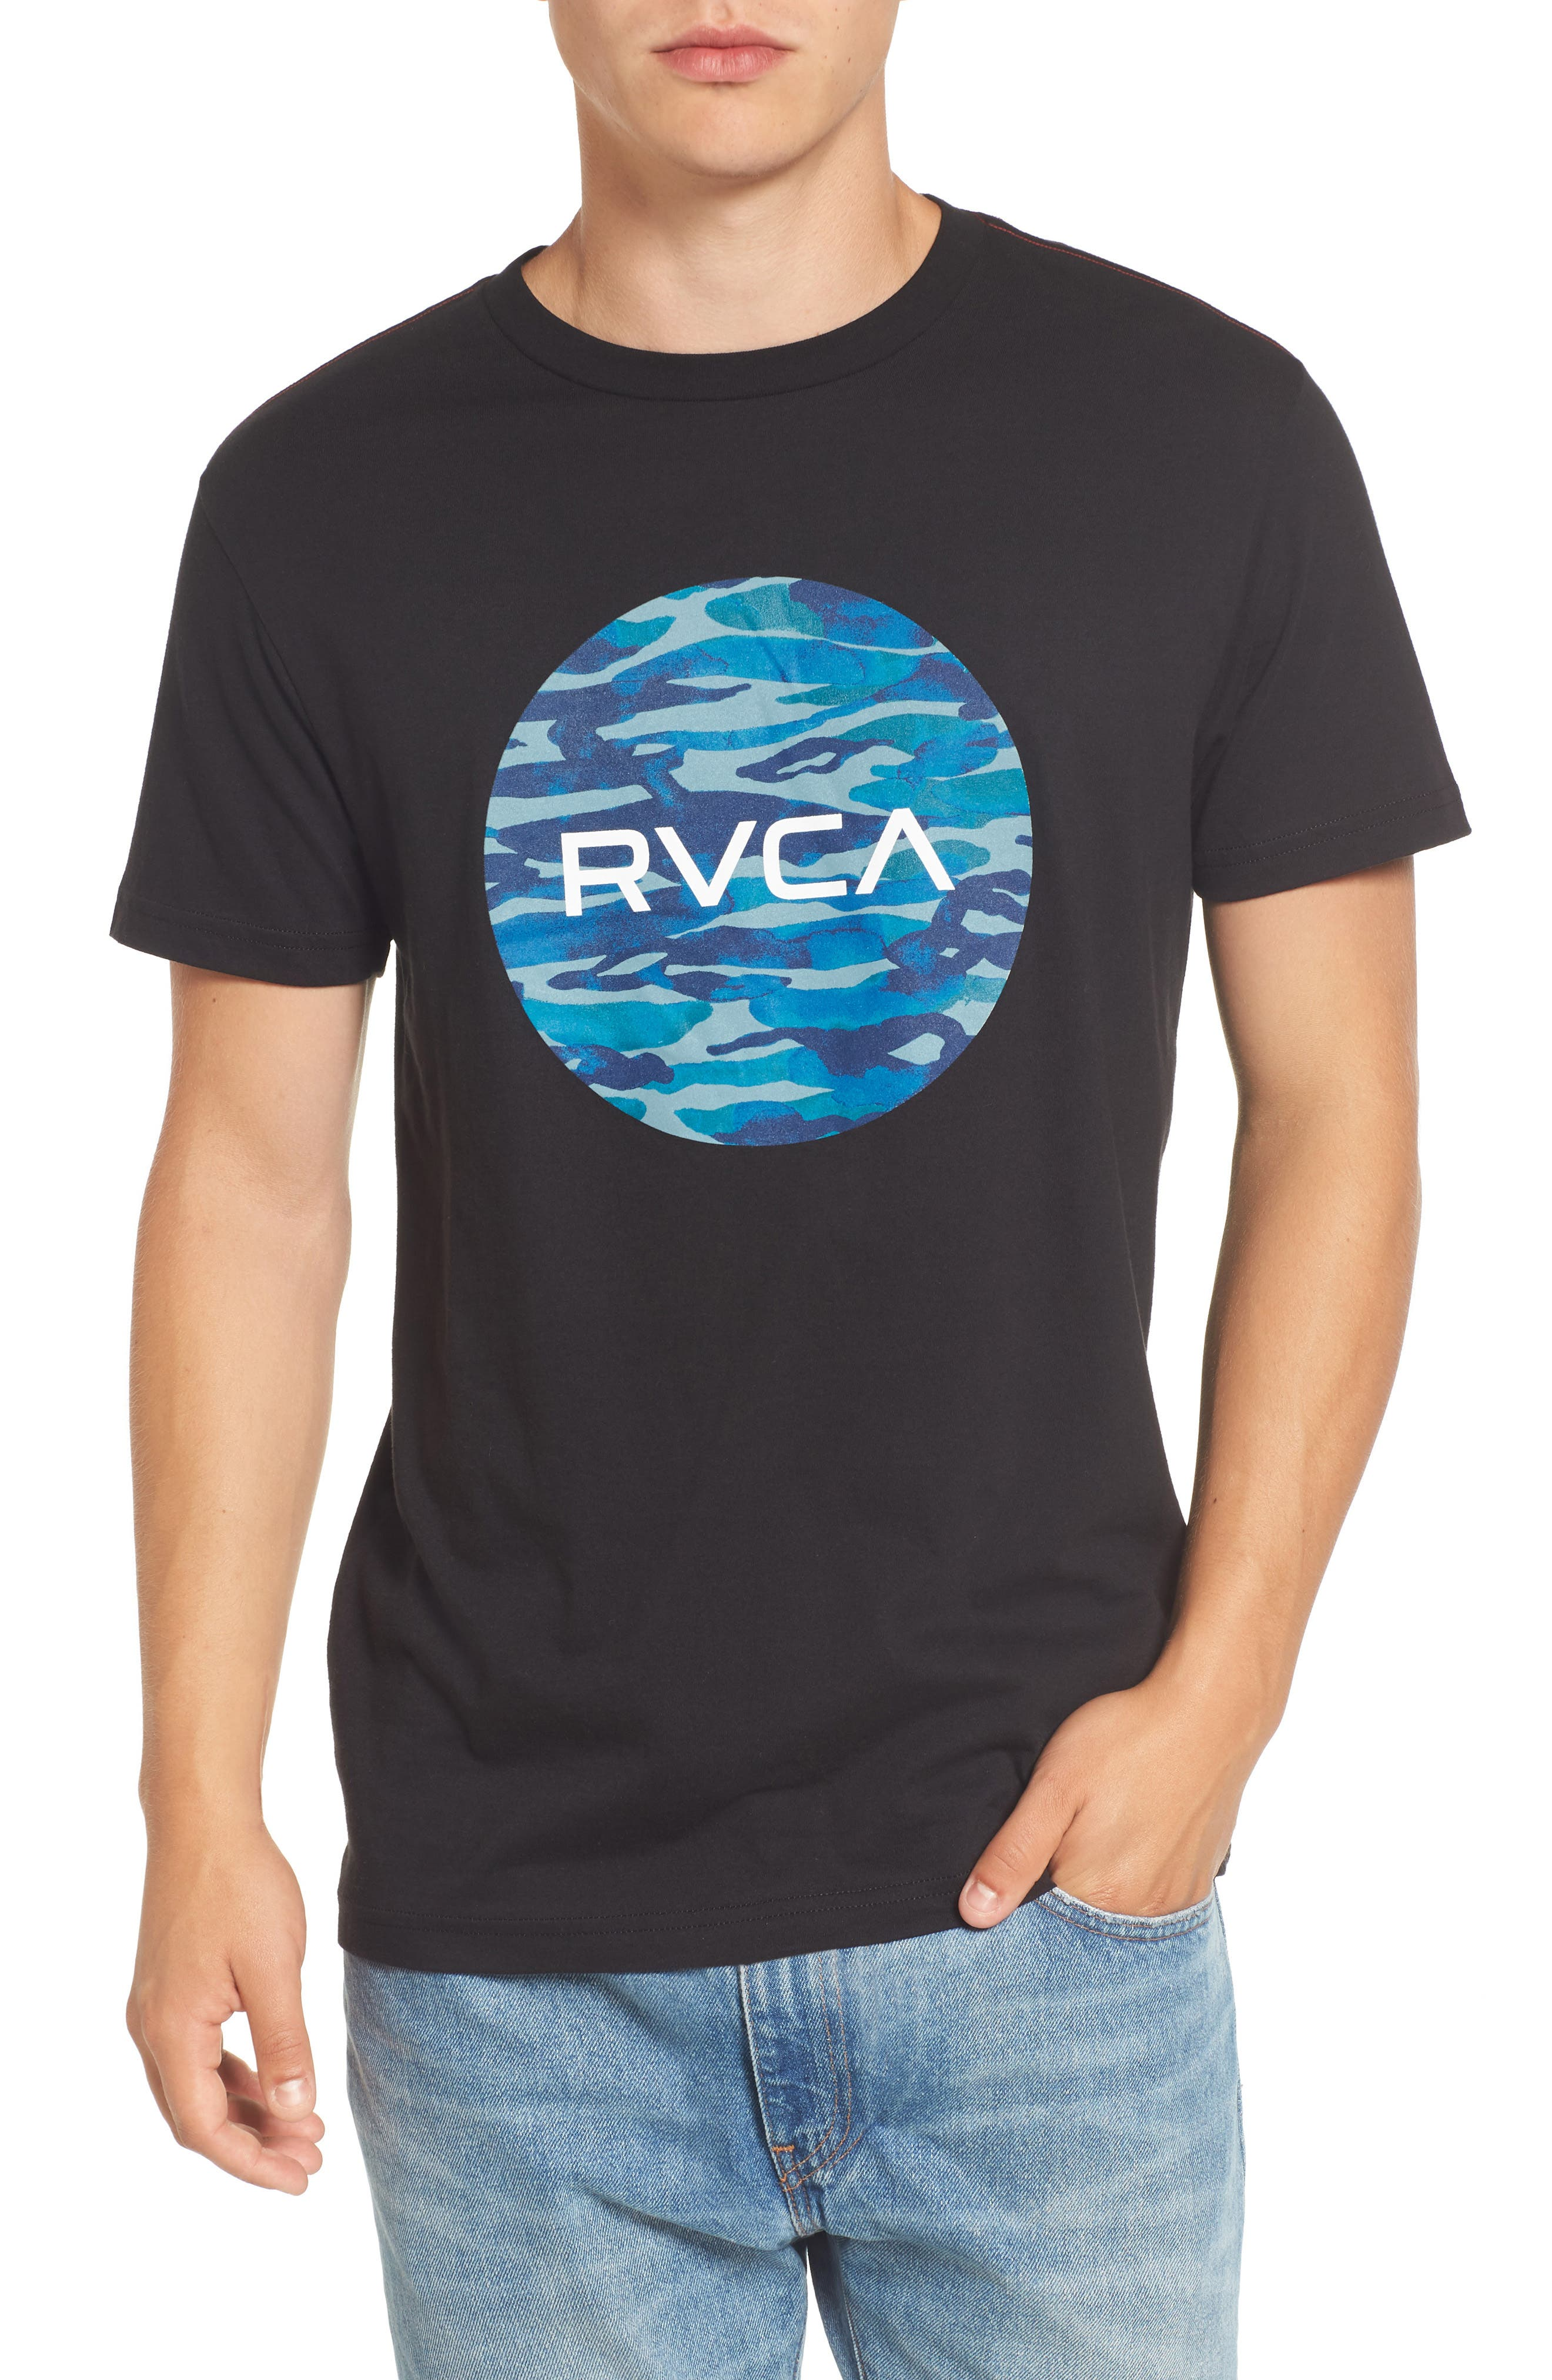 Alternate Image 1 Selected - RVCA Water Camo Motors Graphic T-Shirt